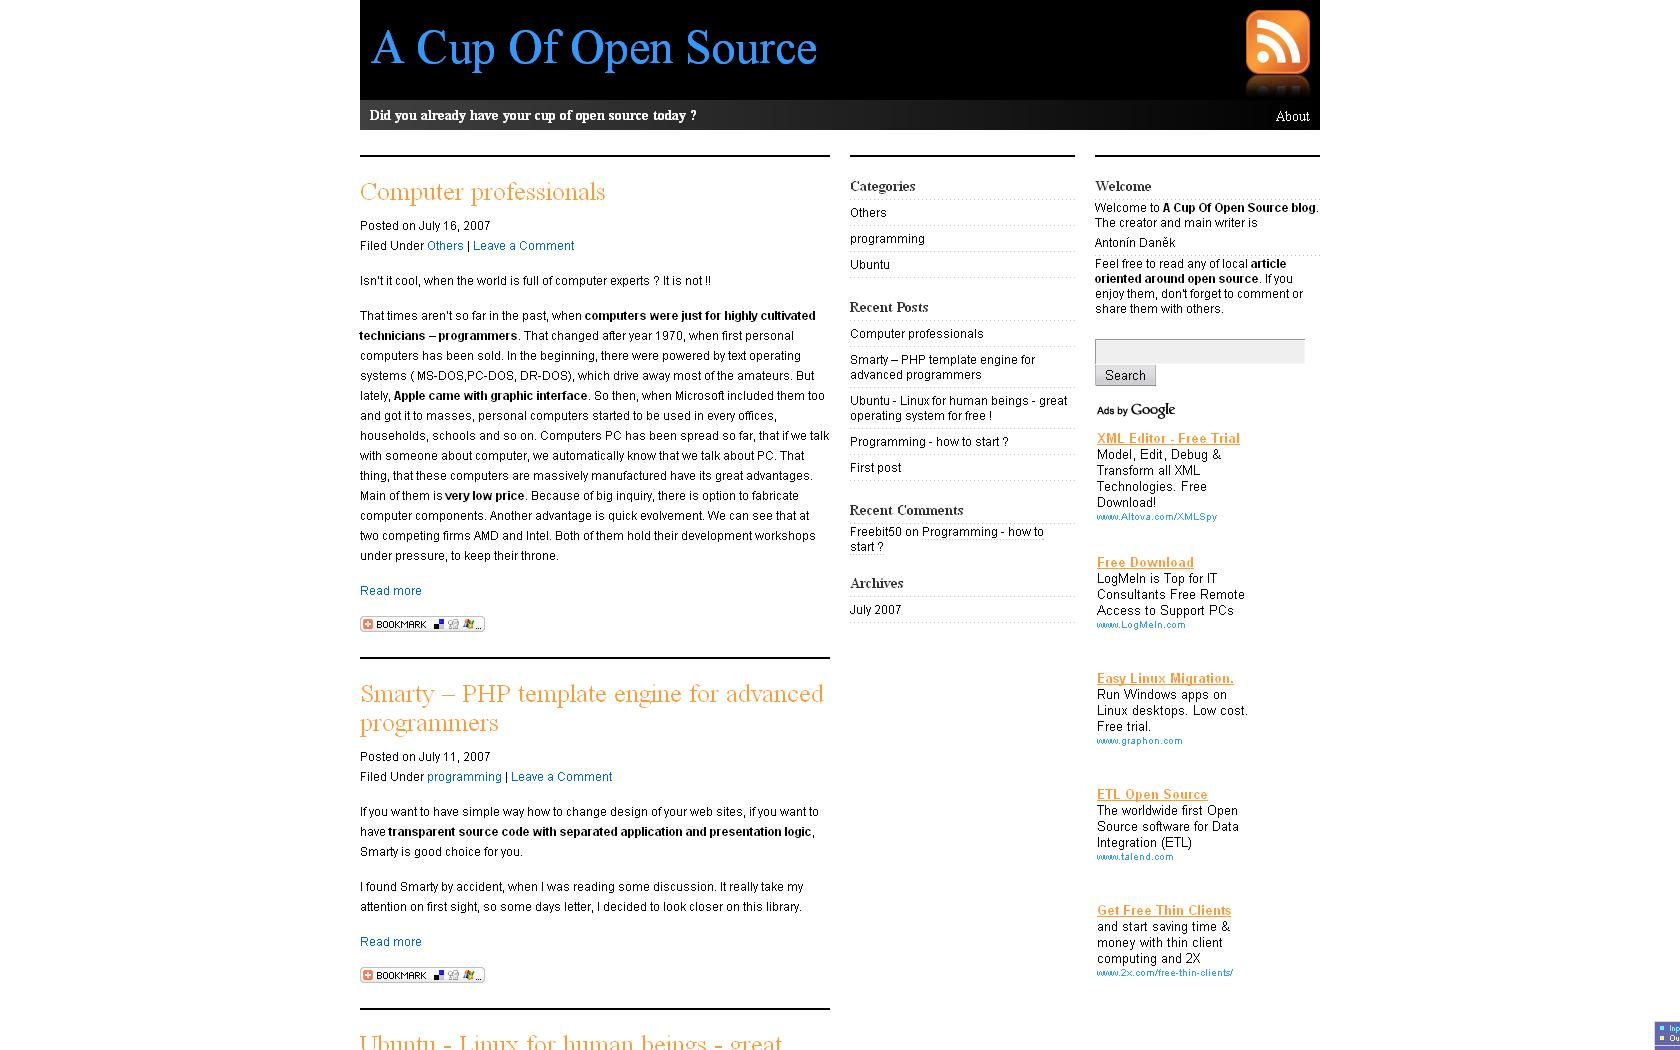 a-cup-of-open-source.JPG